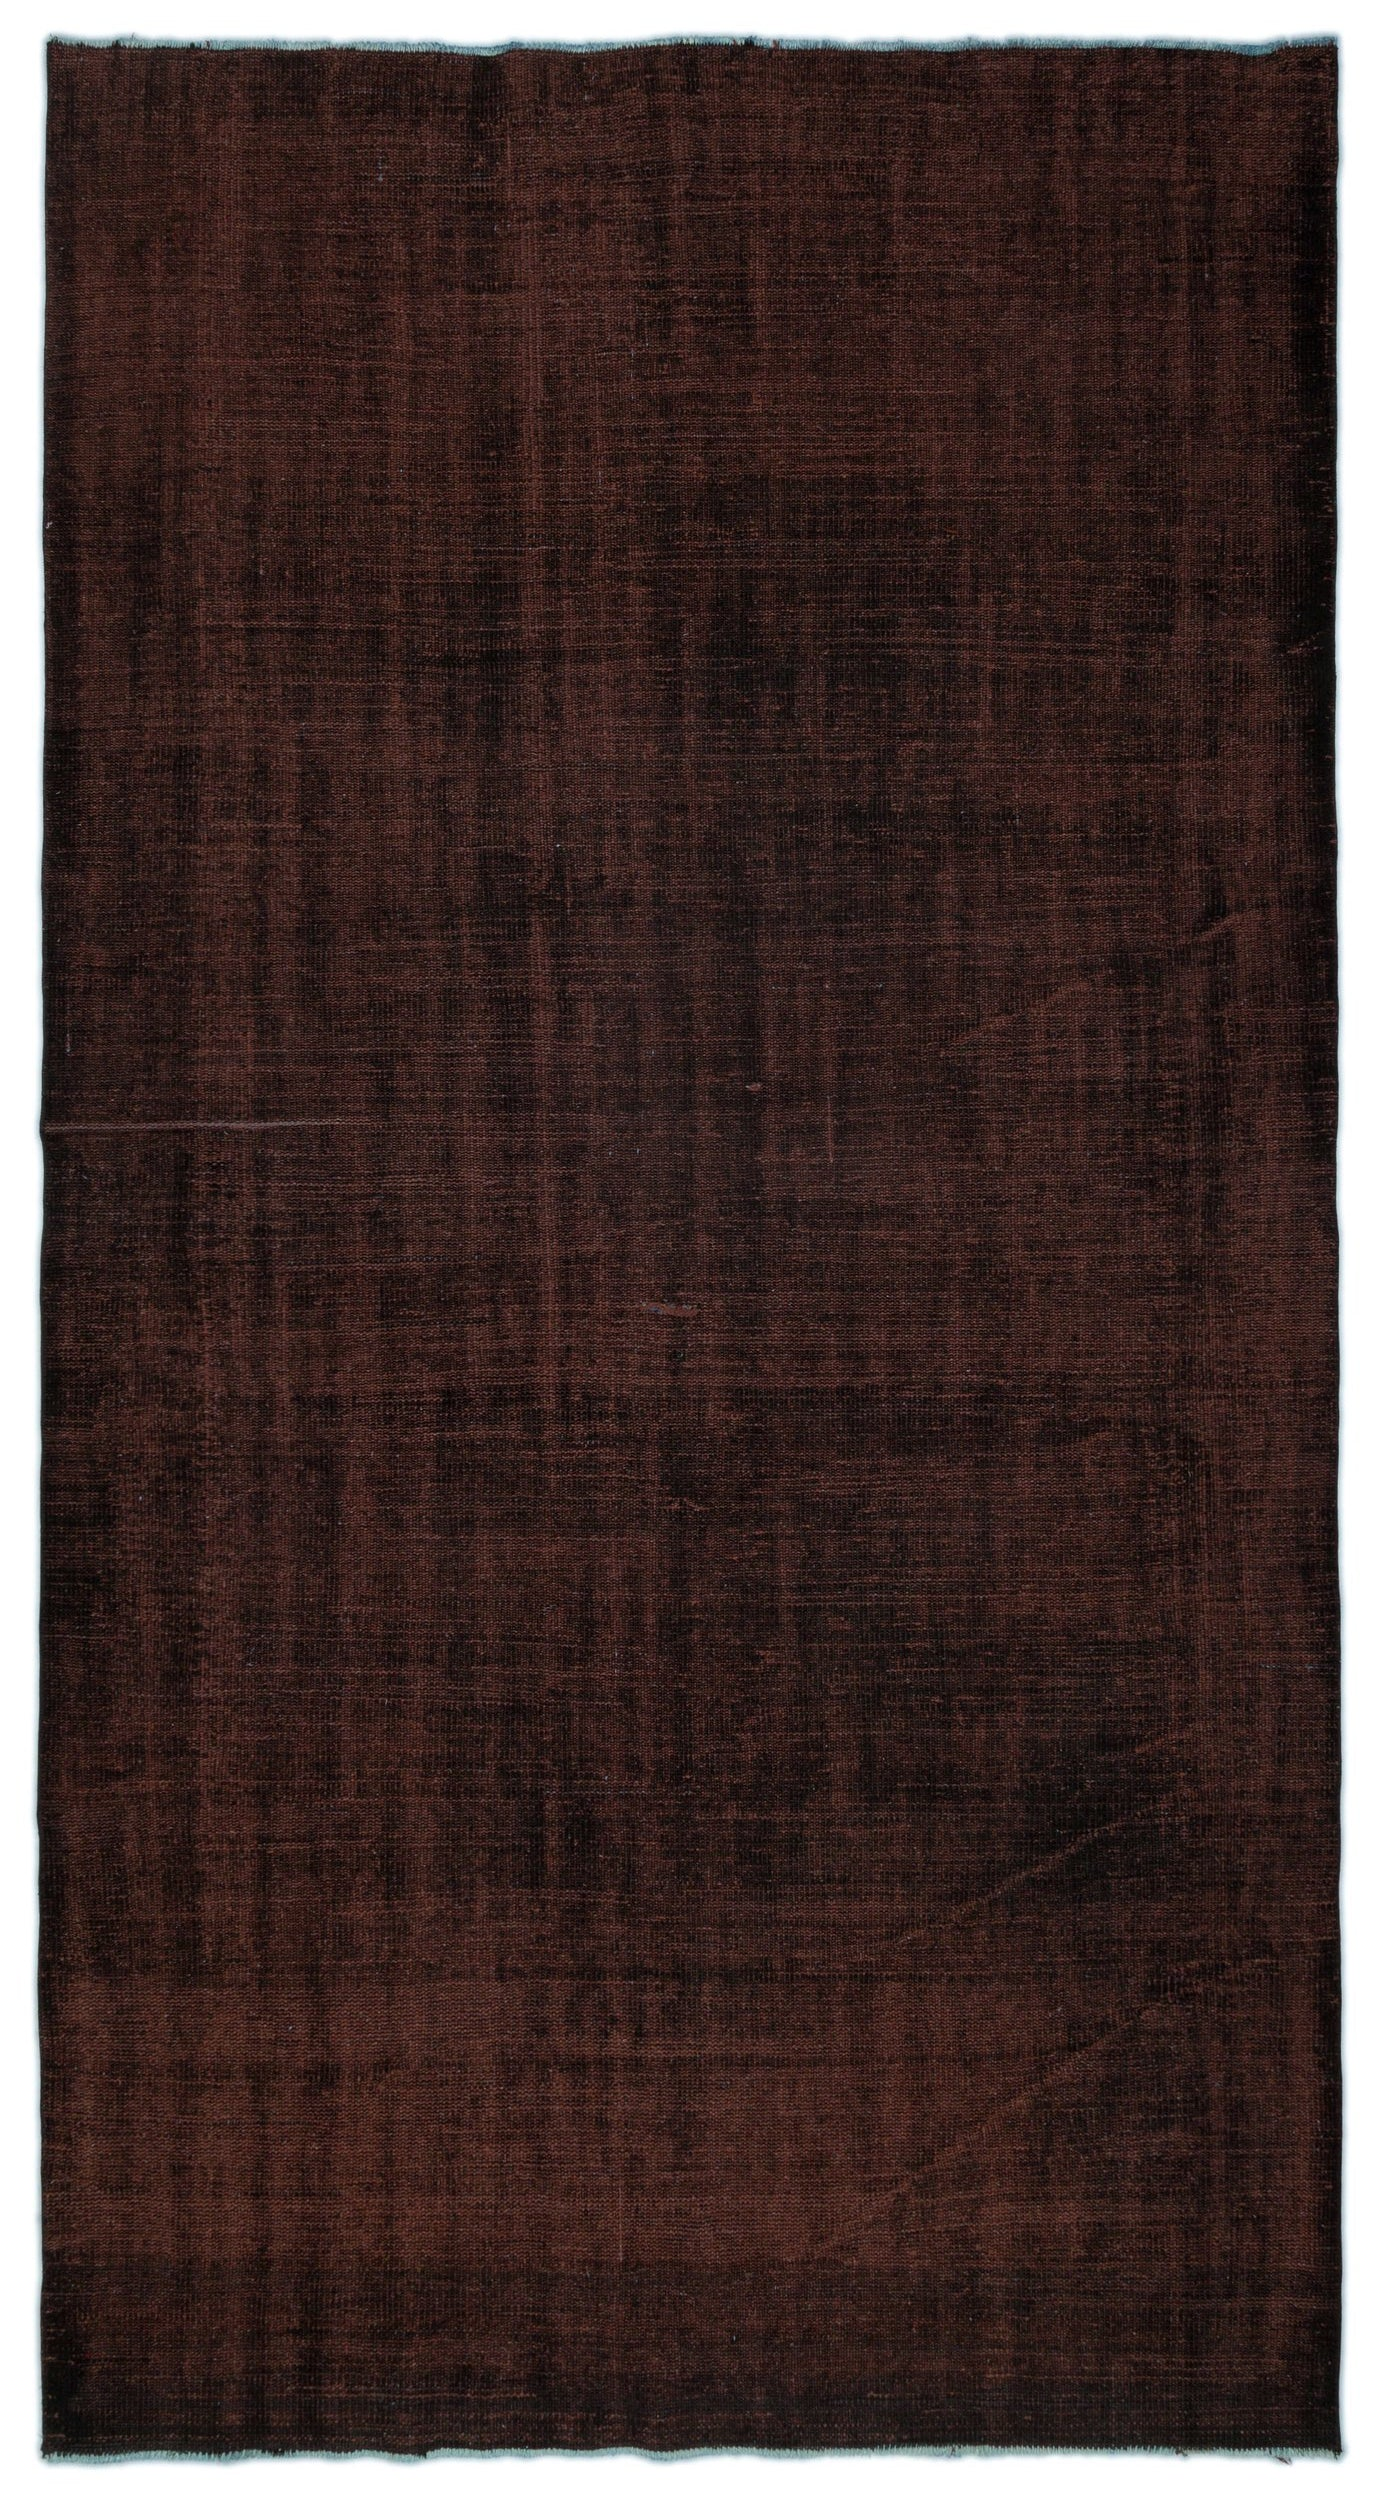 Brown Over Dyed Vintage Rug 5'10'' x 10'3'' ft 177 x 312 cm